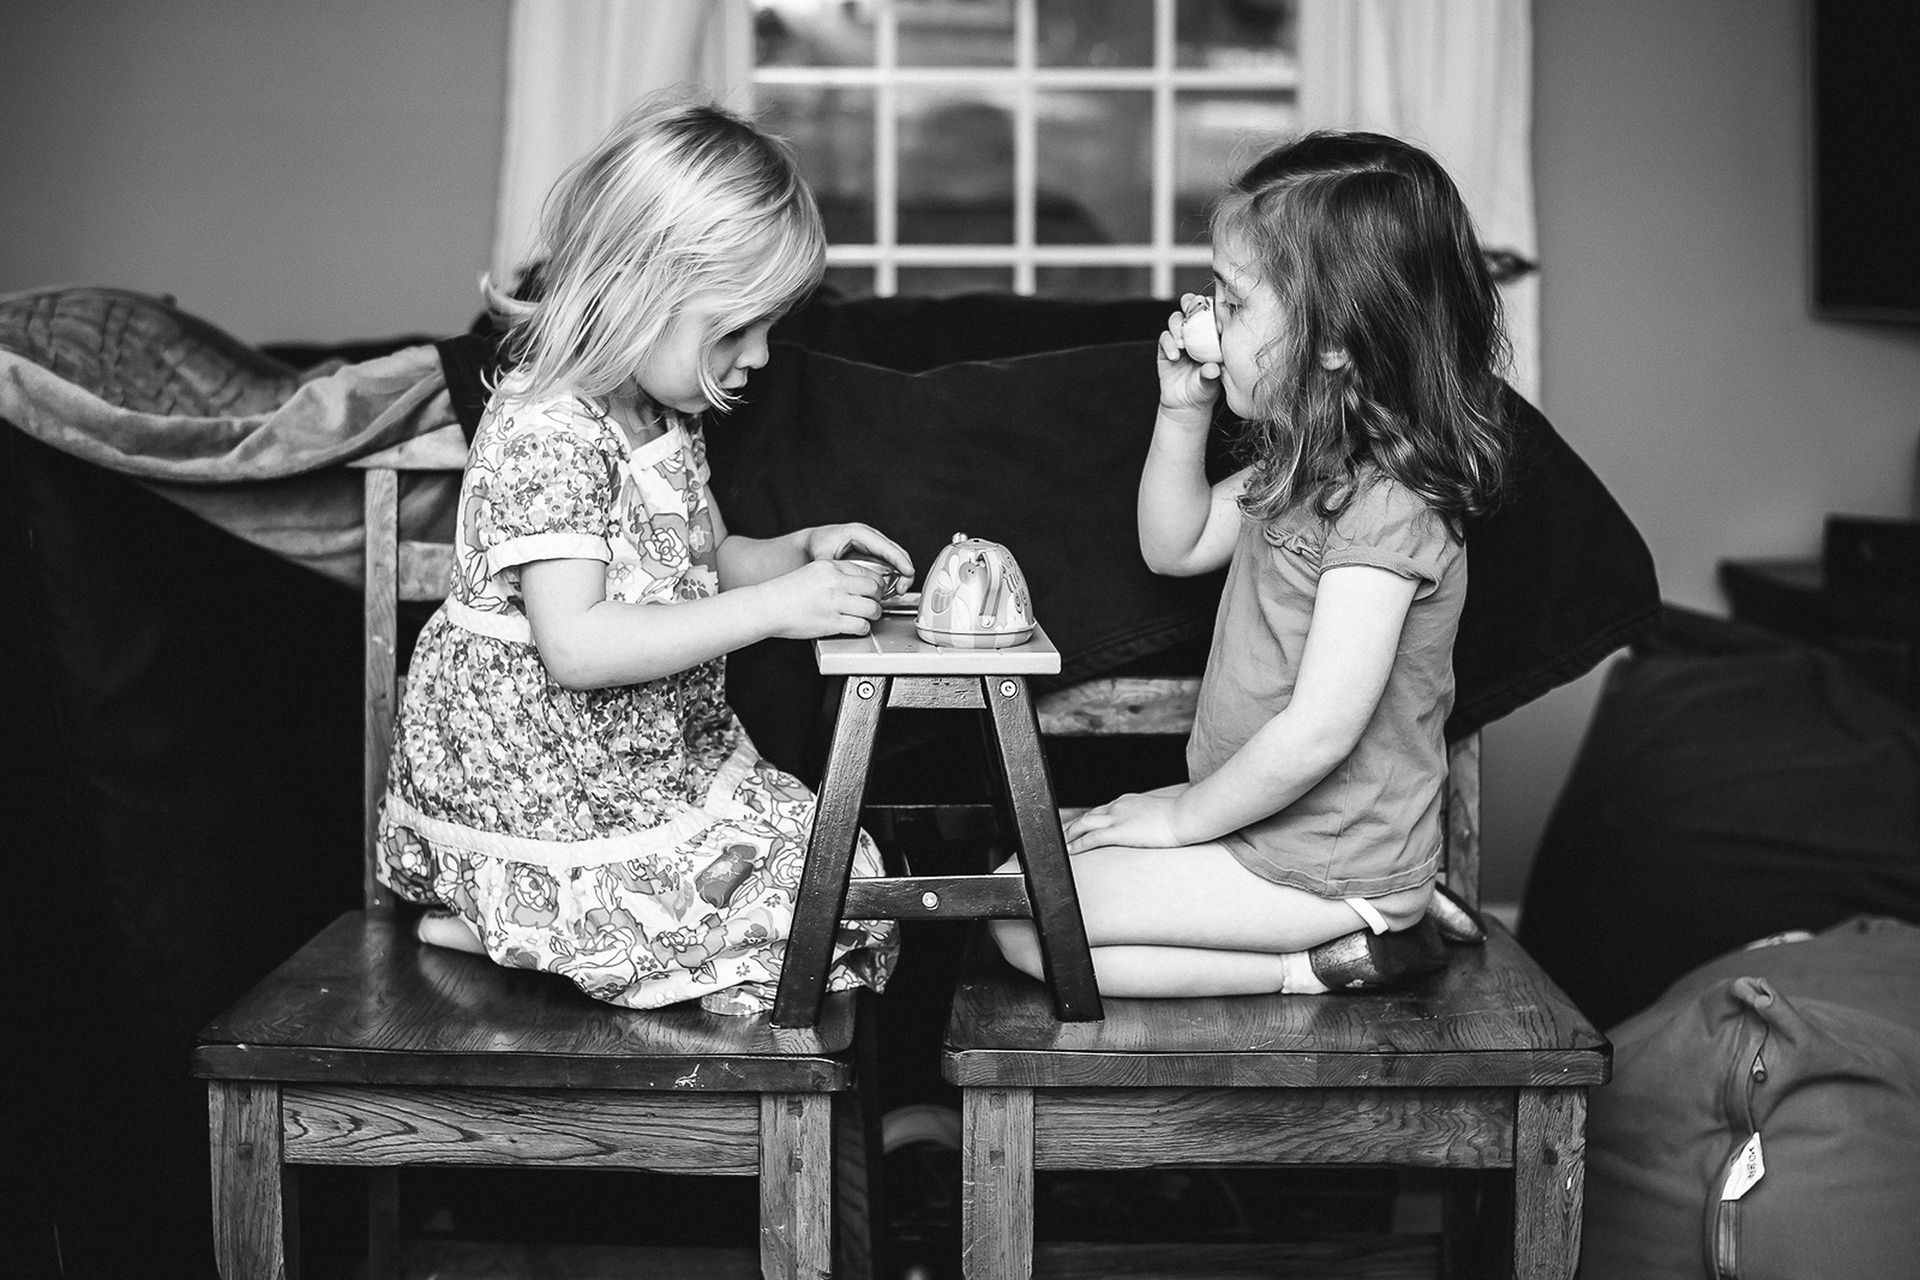 Photograph by Jen Bilodeau, National Geographic Your Shot